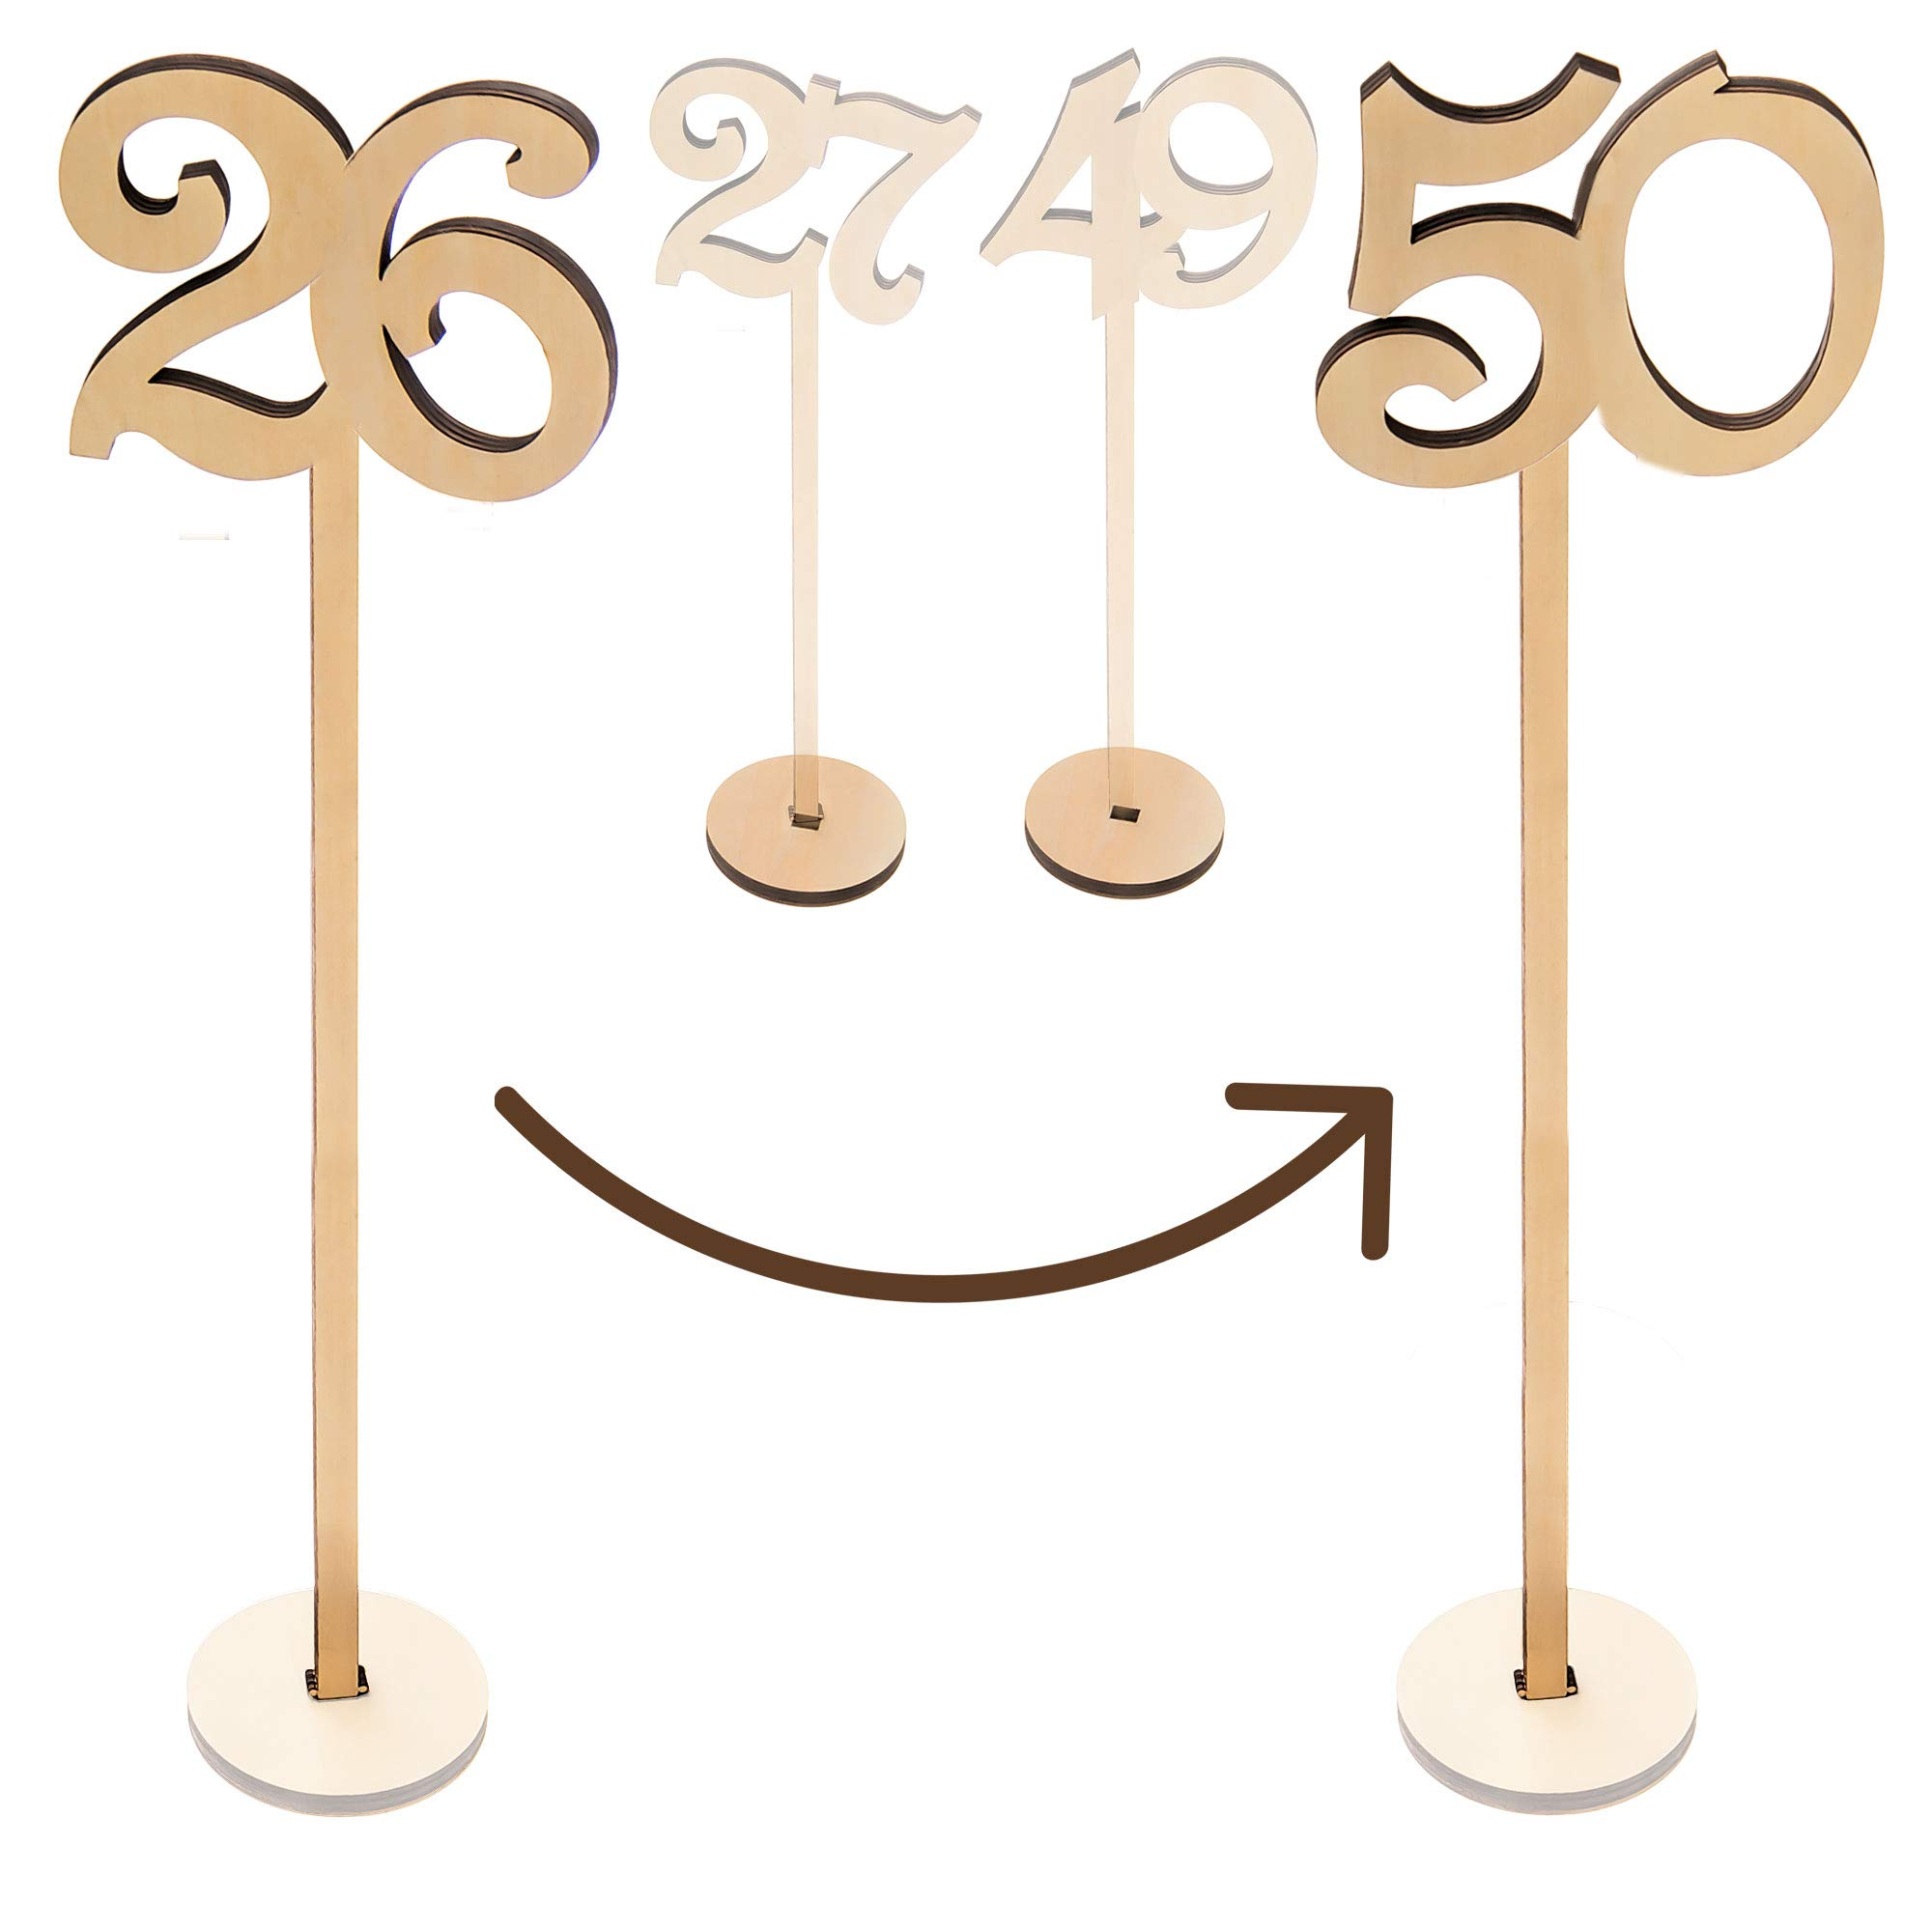 Merry Expressions - Wooden Wedding Table Numbers 26-50 Pack - 13.5'' Tall Large Extra Thick Heavy Duty Commercial Grade Quality Wood - Best for Receptions, Banquets, Cafés, Restaurants, Hotels, Parties by Merry Expressions